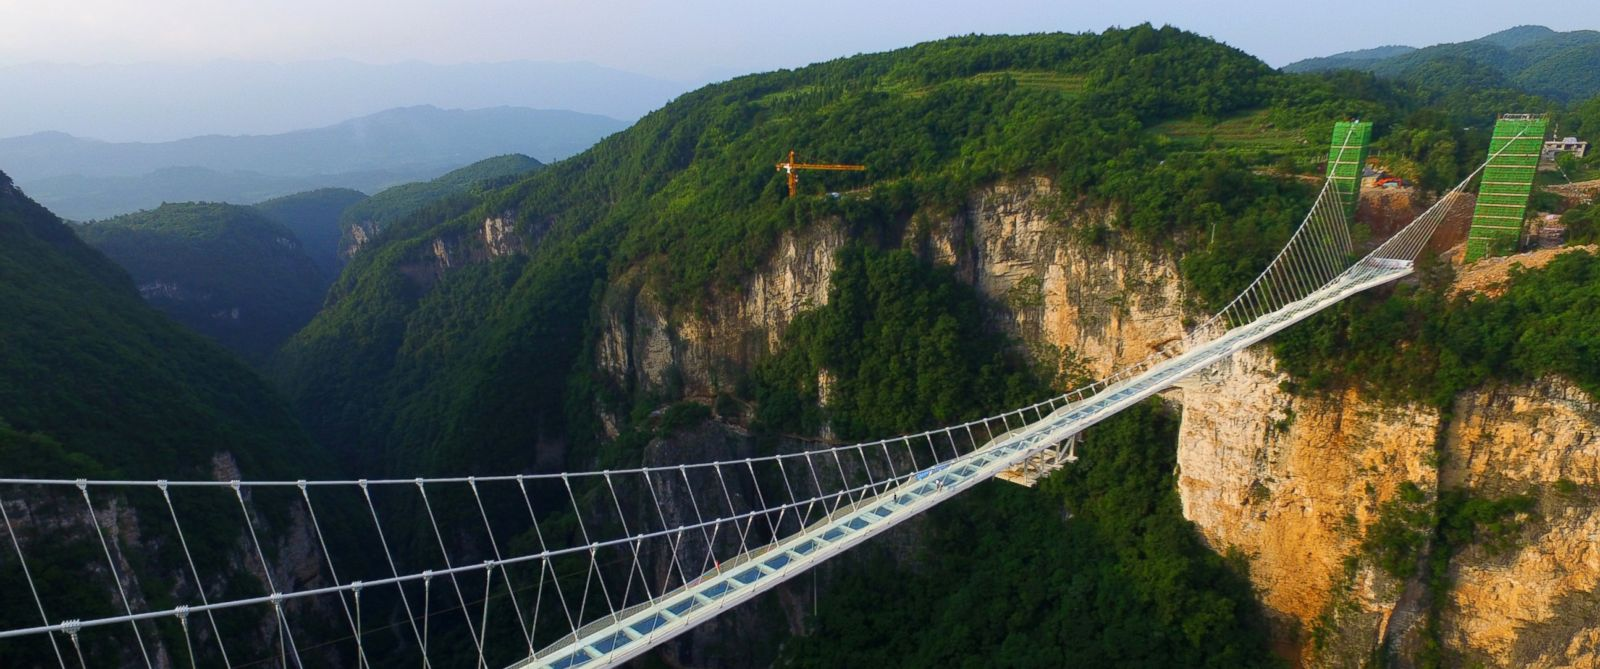 GTY_China_Glass_Bridge2_hb_160613_31x13_1600